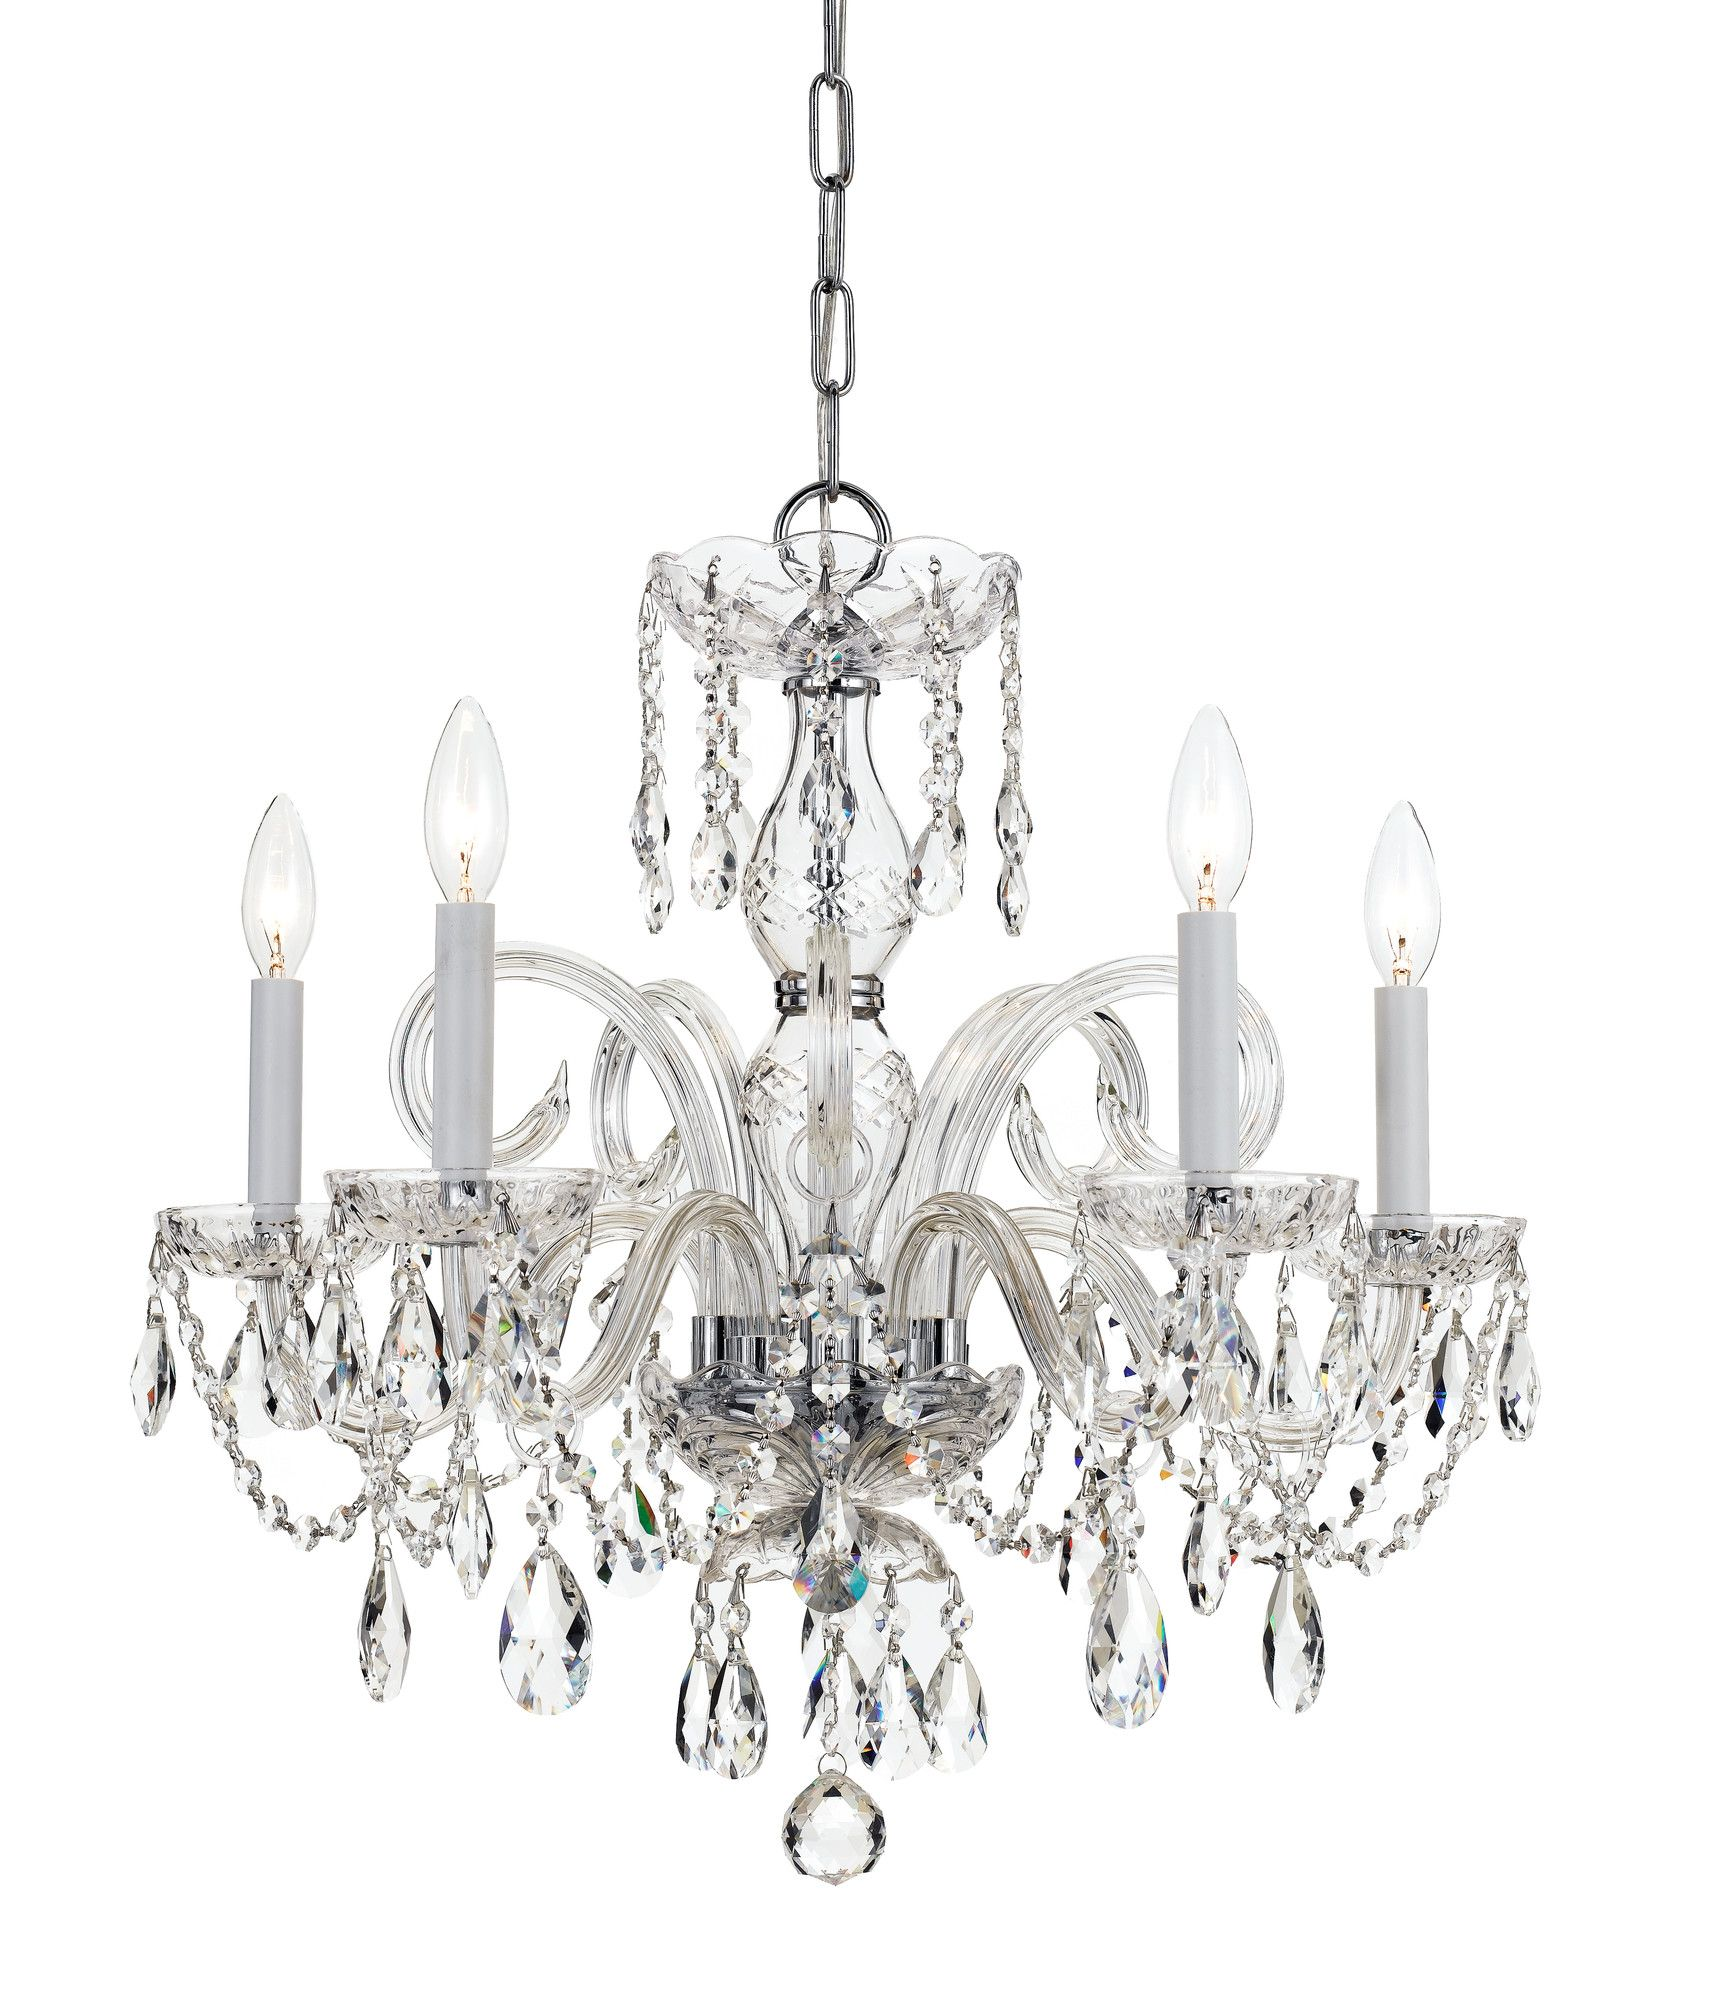 Traditional crystal 5 light glass chandelier products pinterest traditional crystal lighting fixtures are classic timeless and elegant crystoramas opulent glass arm polished chrome chandelier dressed in clear hand arubaitofo Gallery